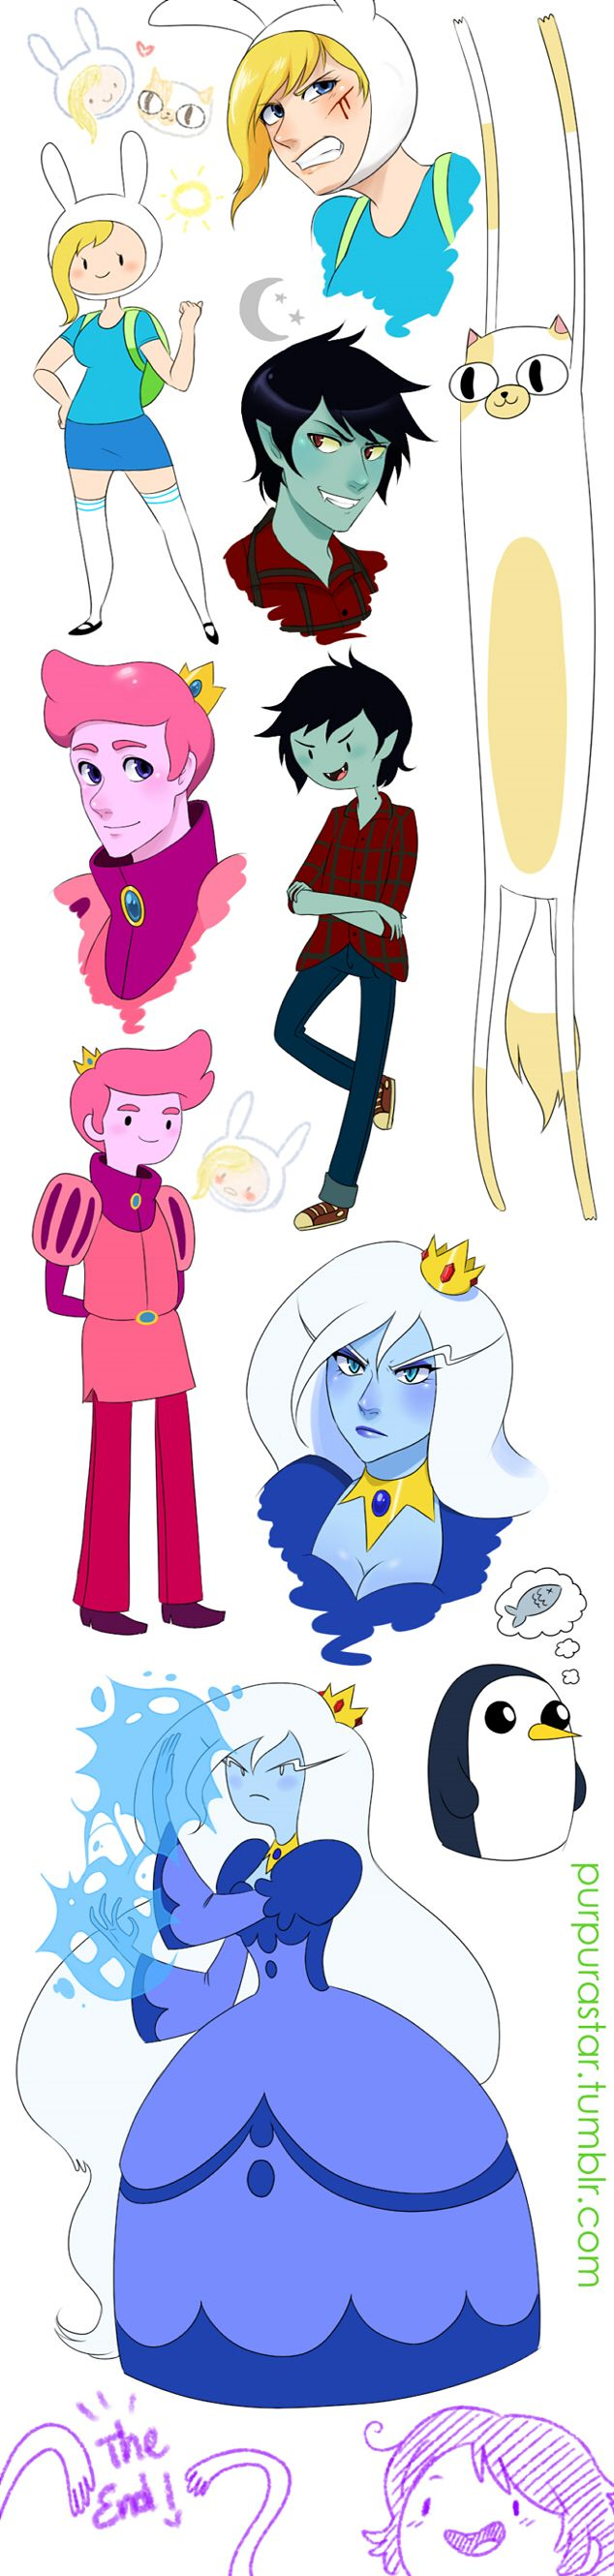 Adventure time Genderbend dump by Purple-Star-6.deviantart.com on @deviantART